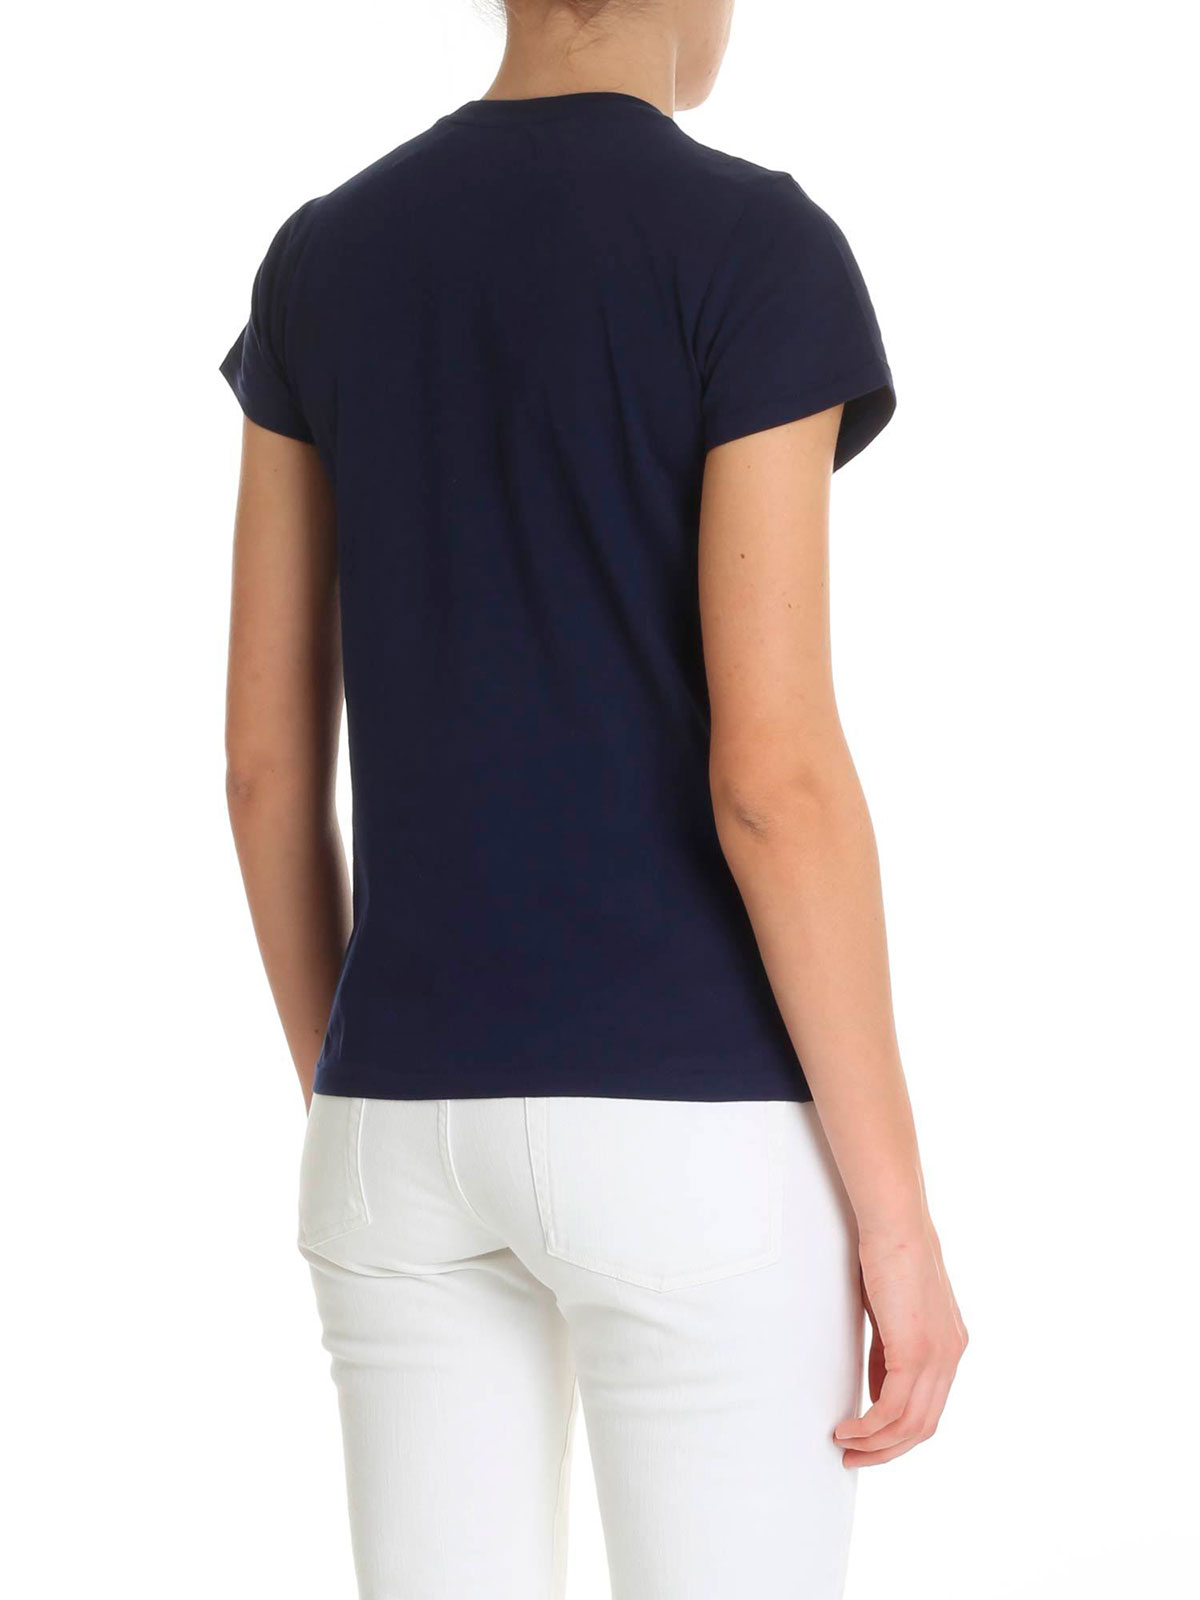 Picture of POLO RALPH LAUREN   Women's Polo T-shirt